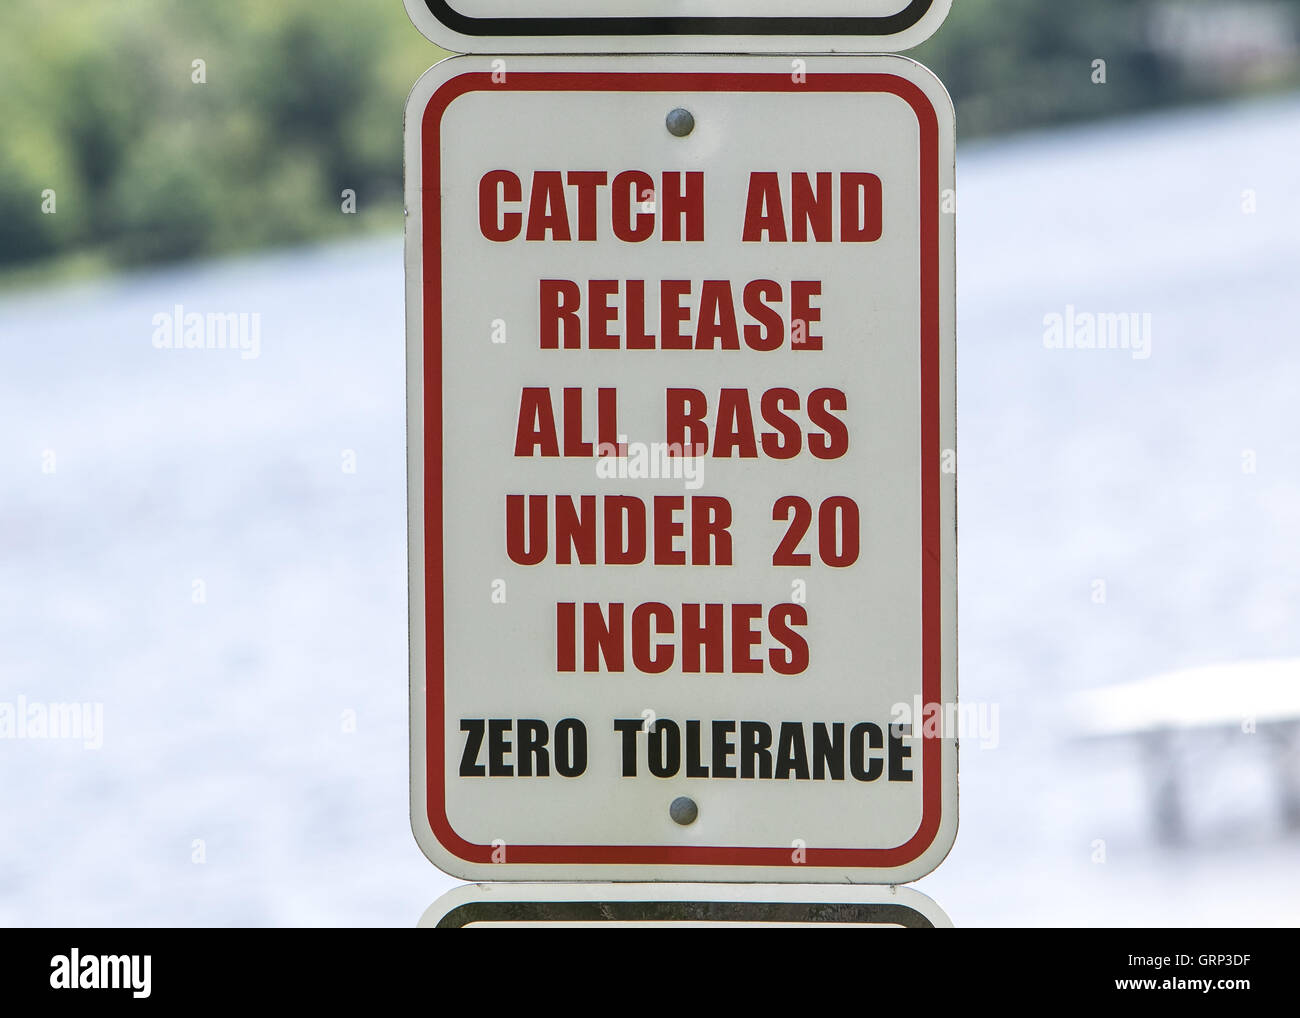 A 'Catch and release all bass under twenty inches' sign. - Stock Image